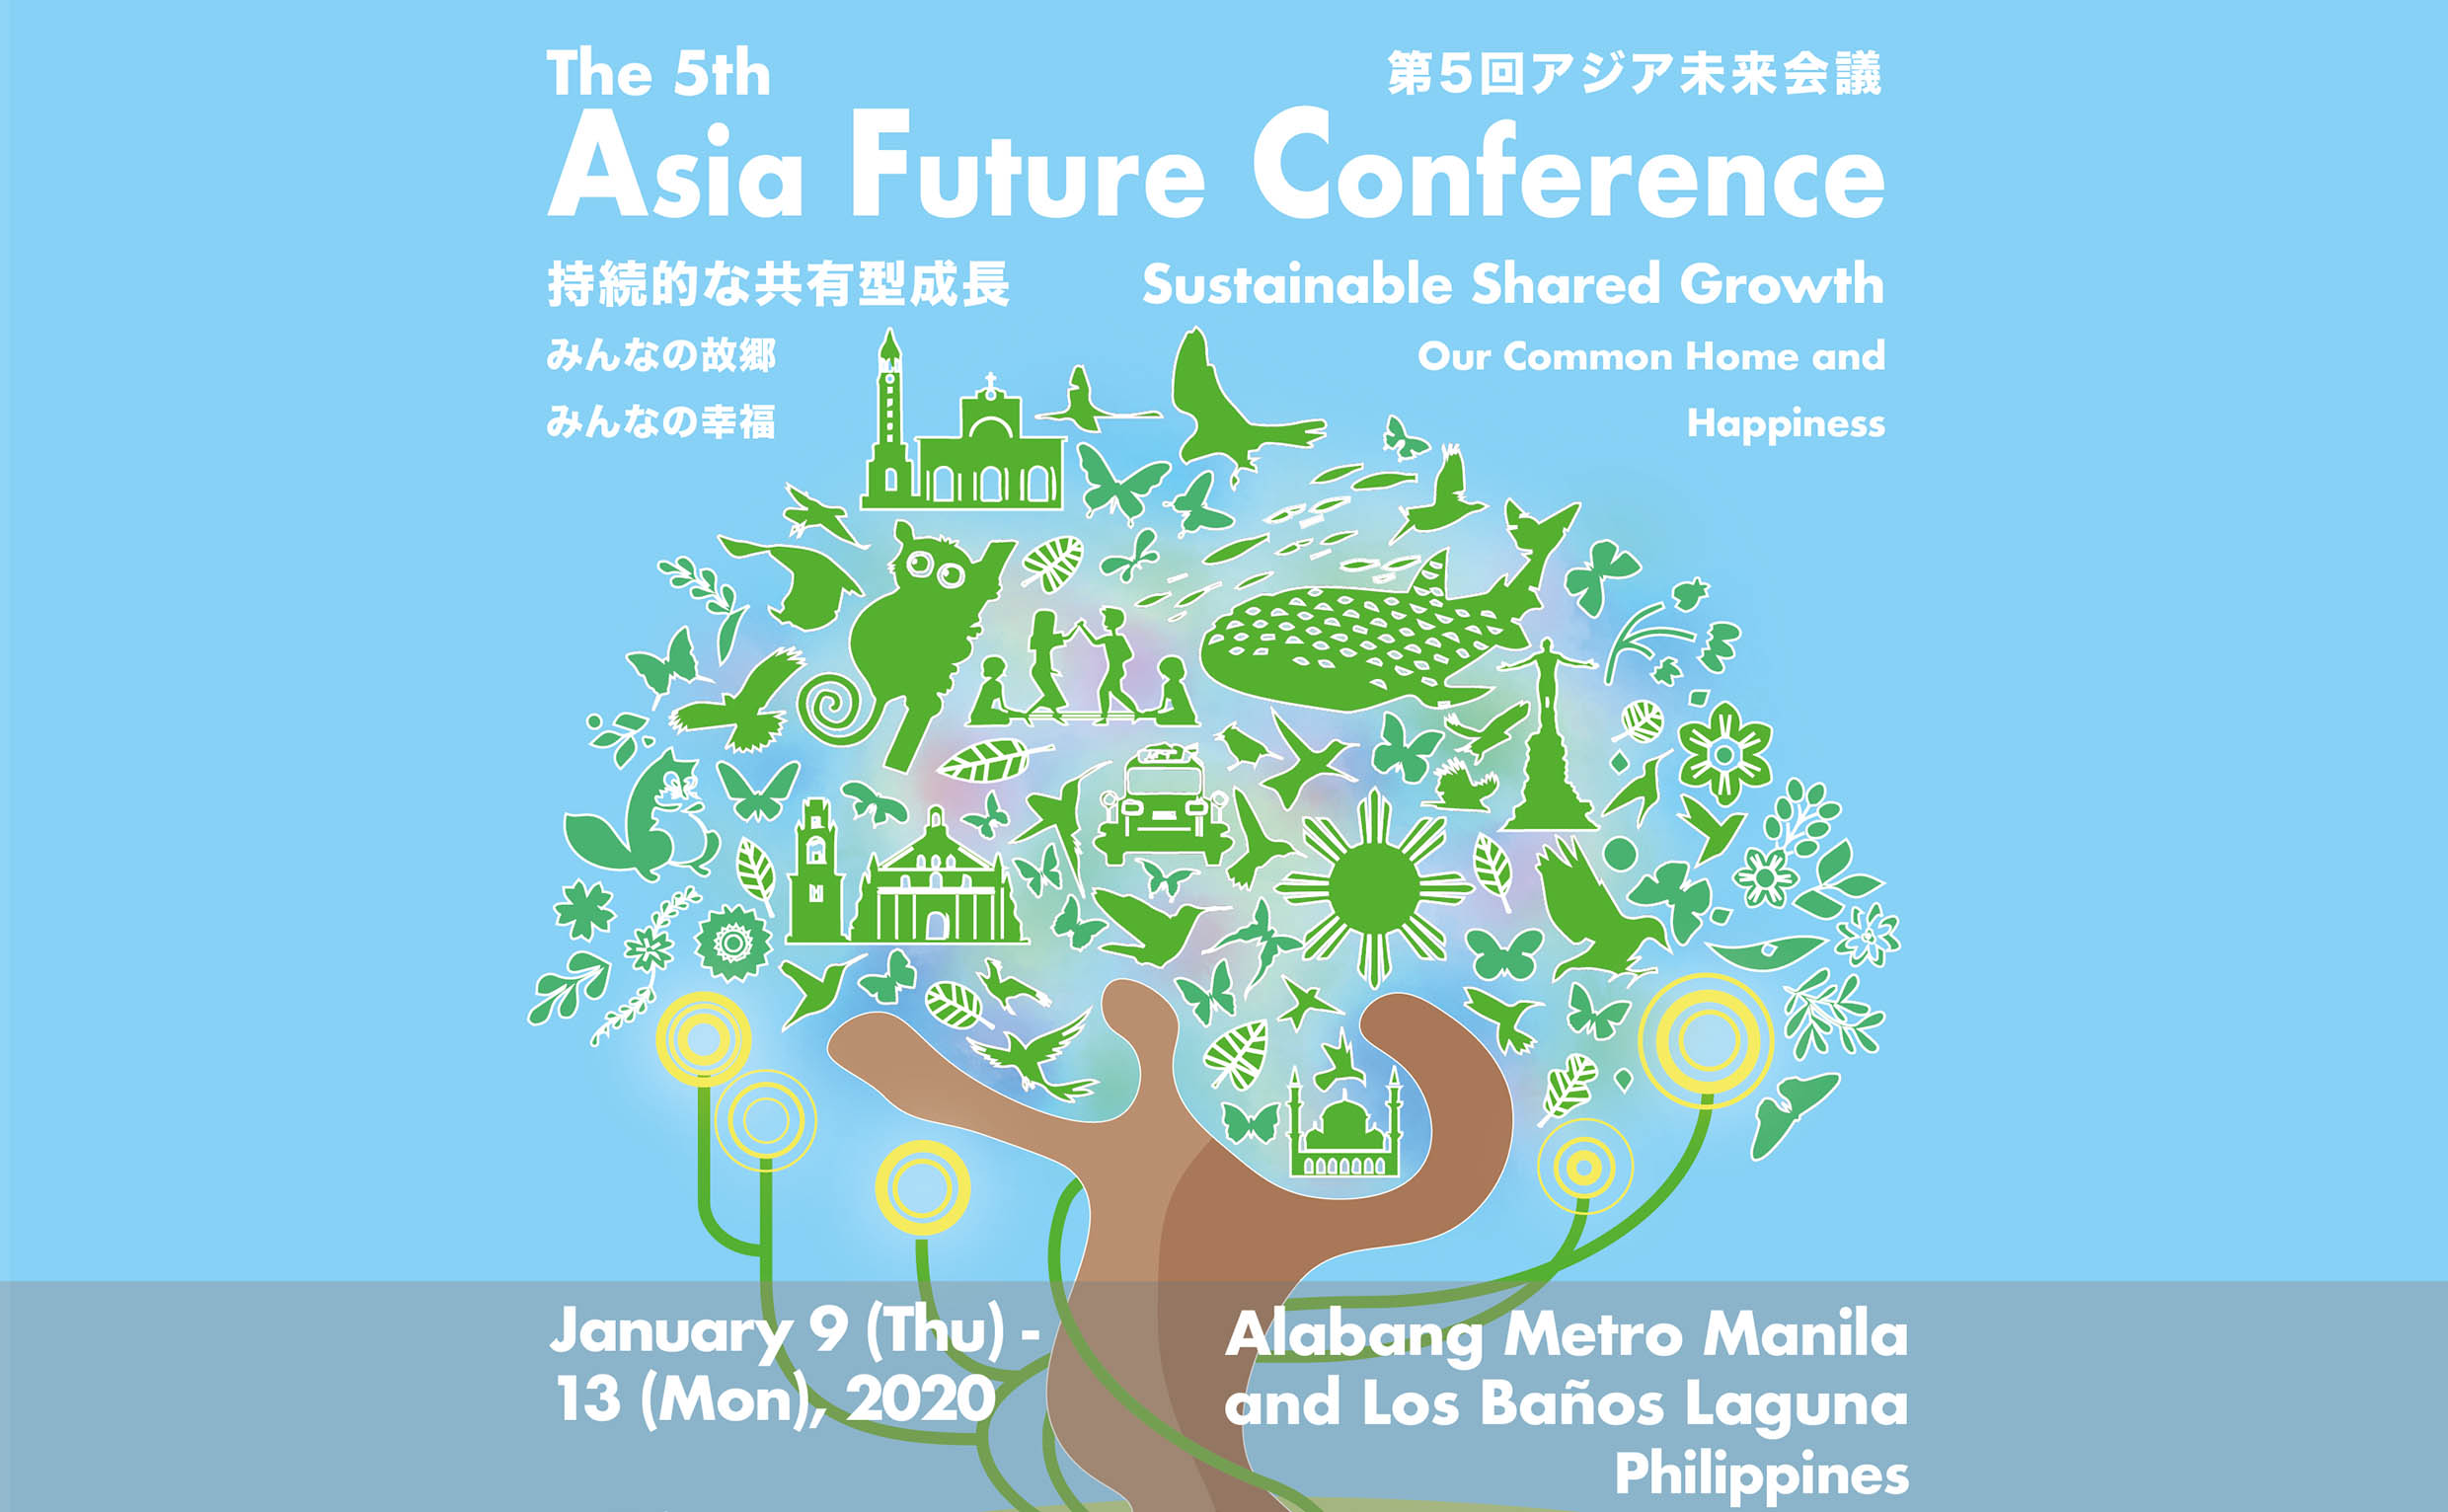 UPLB to host Asia Future Conference in Jan. 2020